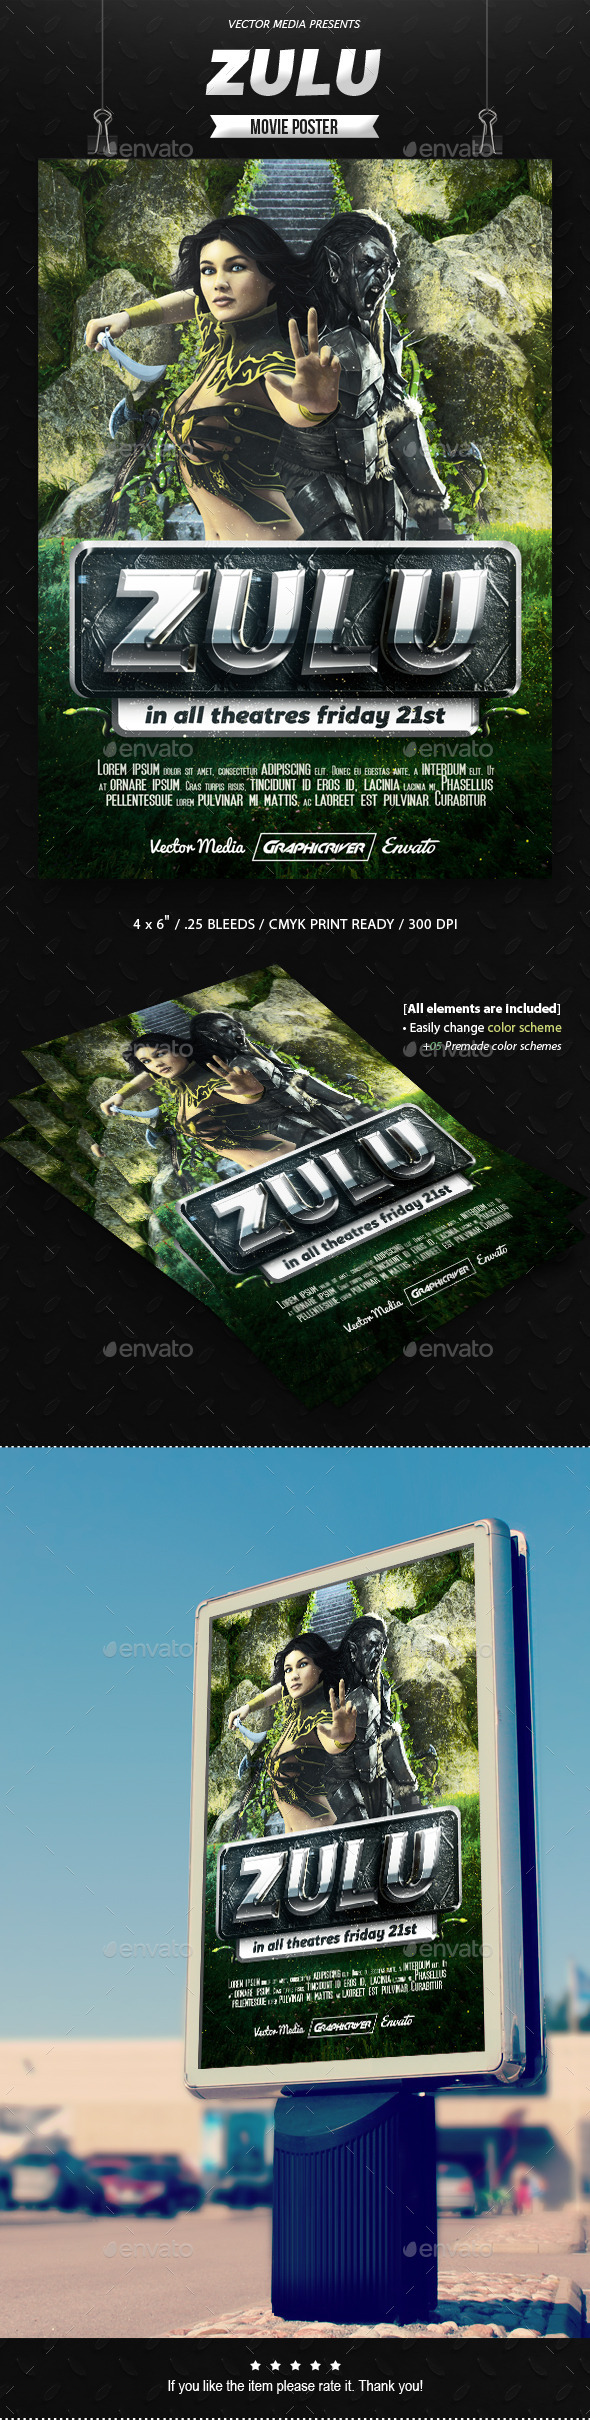 Zulu - Movie Poster - Miscellaneous Events